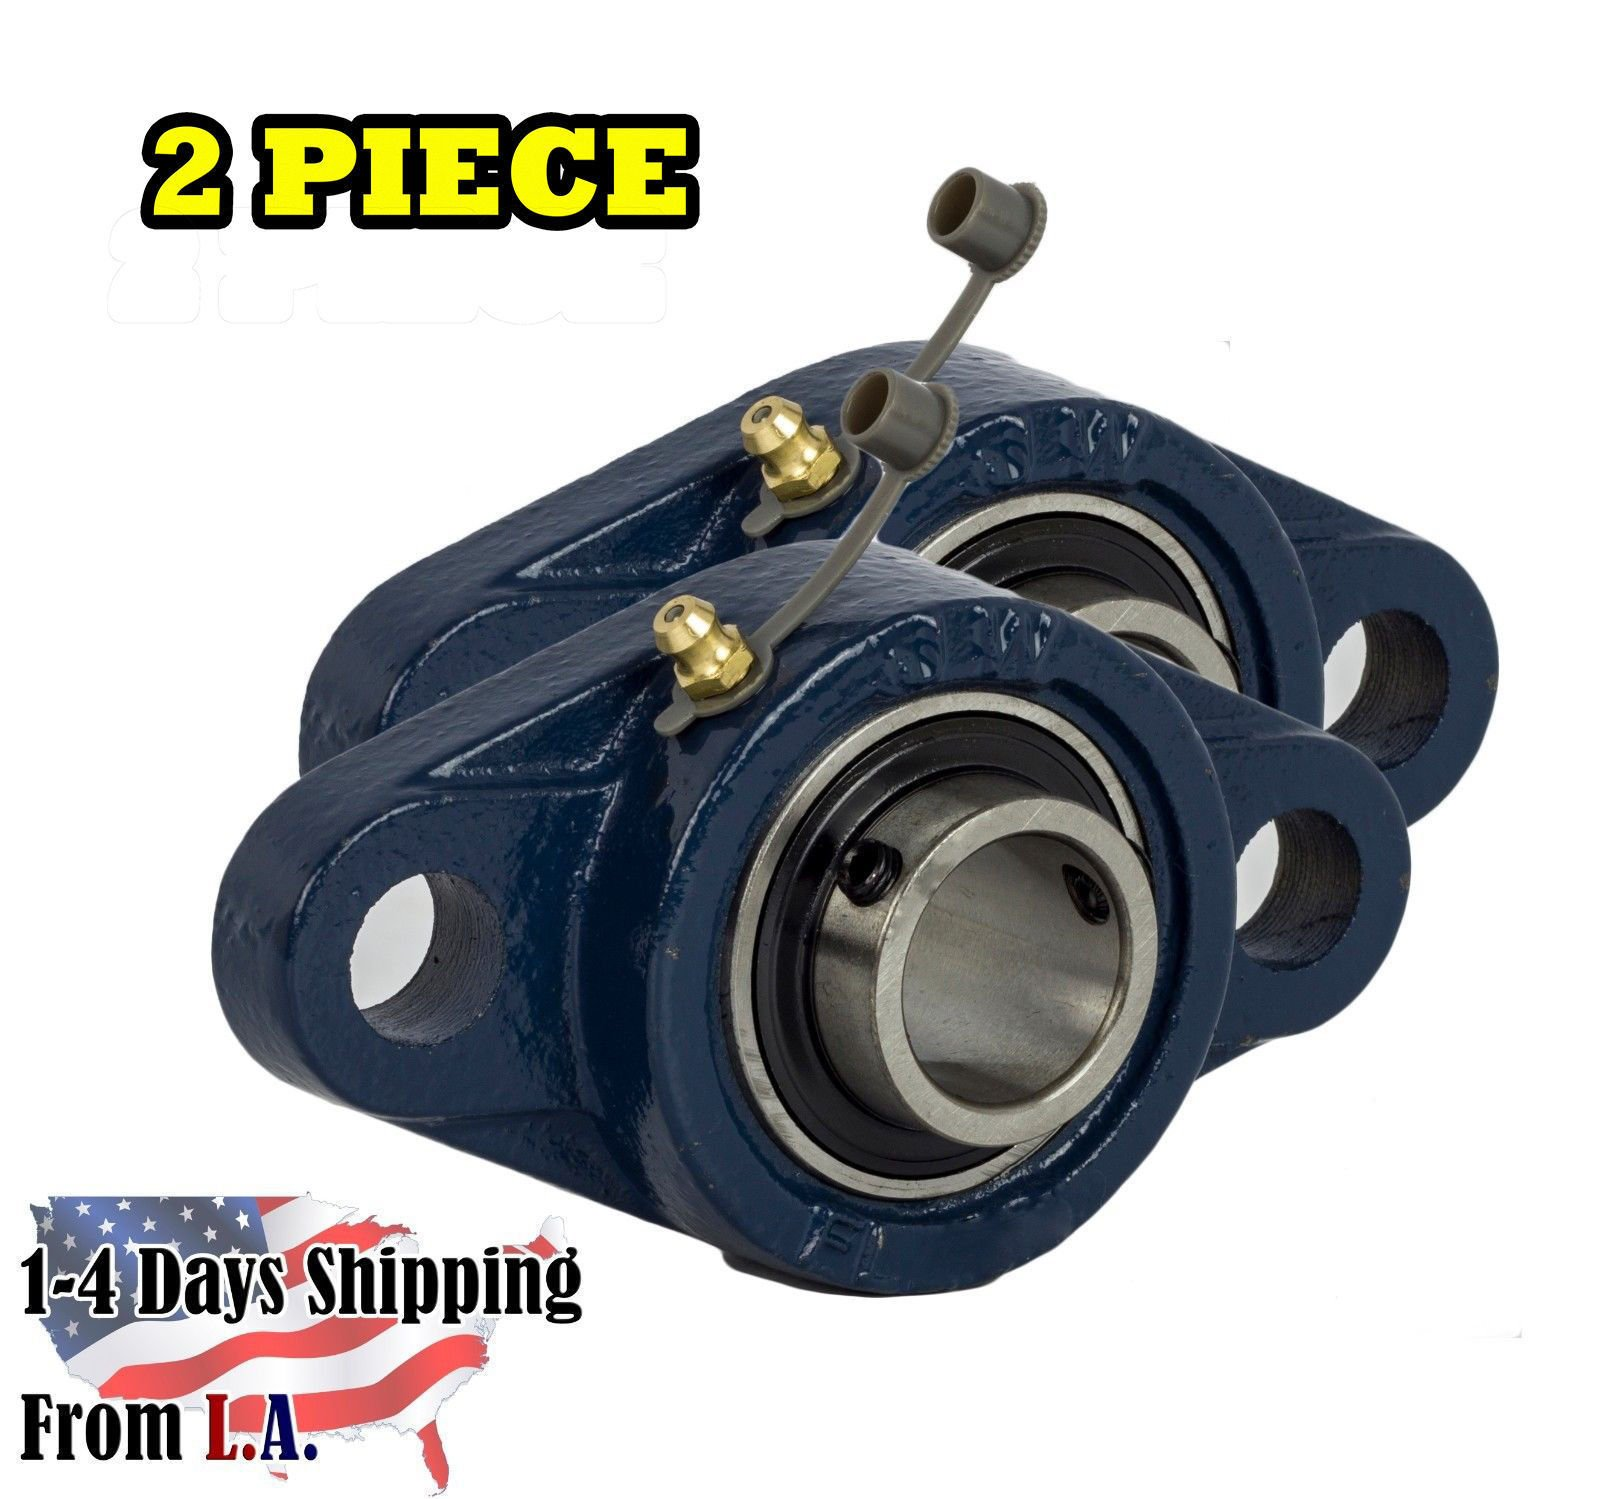 2 Pieces- UCFL204-12 3/4 inch 2 Bolt Pillow Block Flange Bearing, Self-Alignment, Brand New